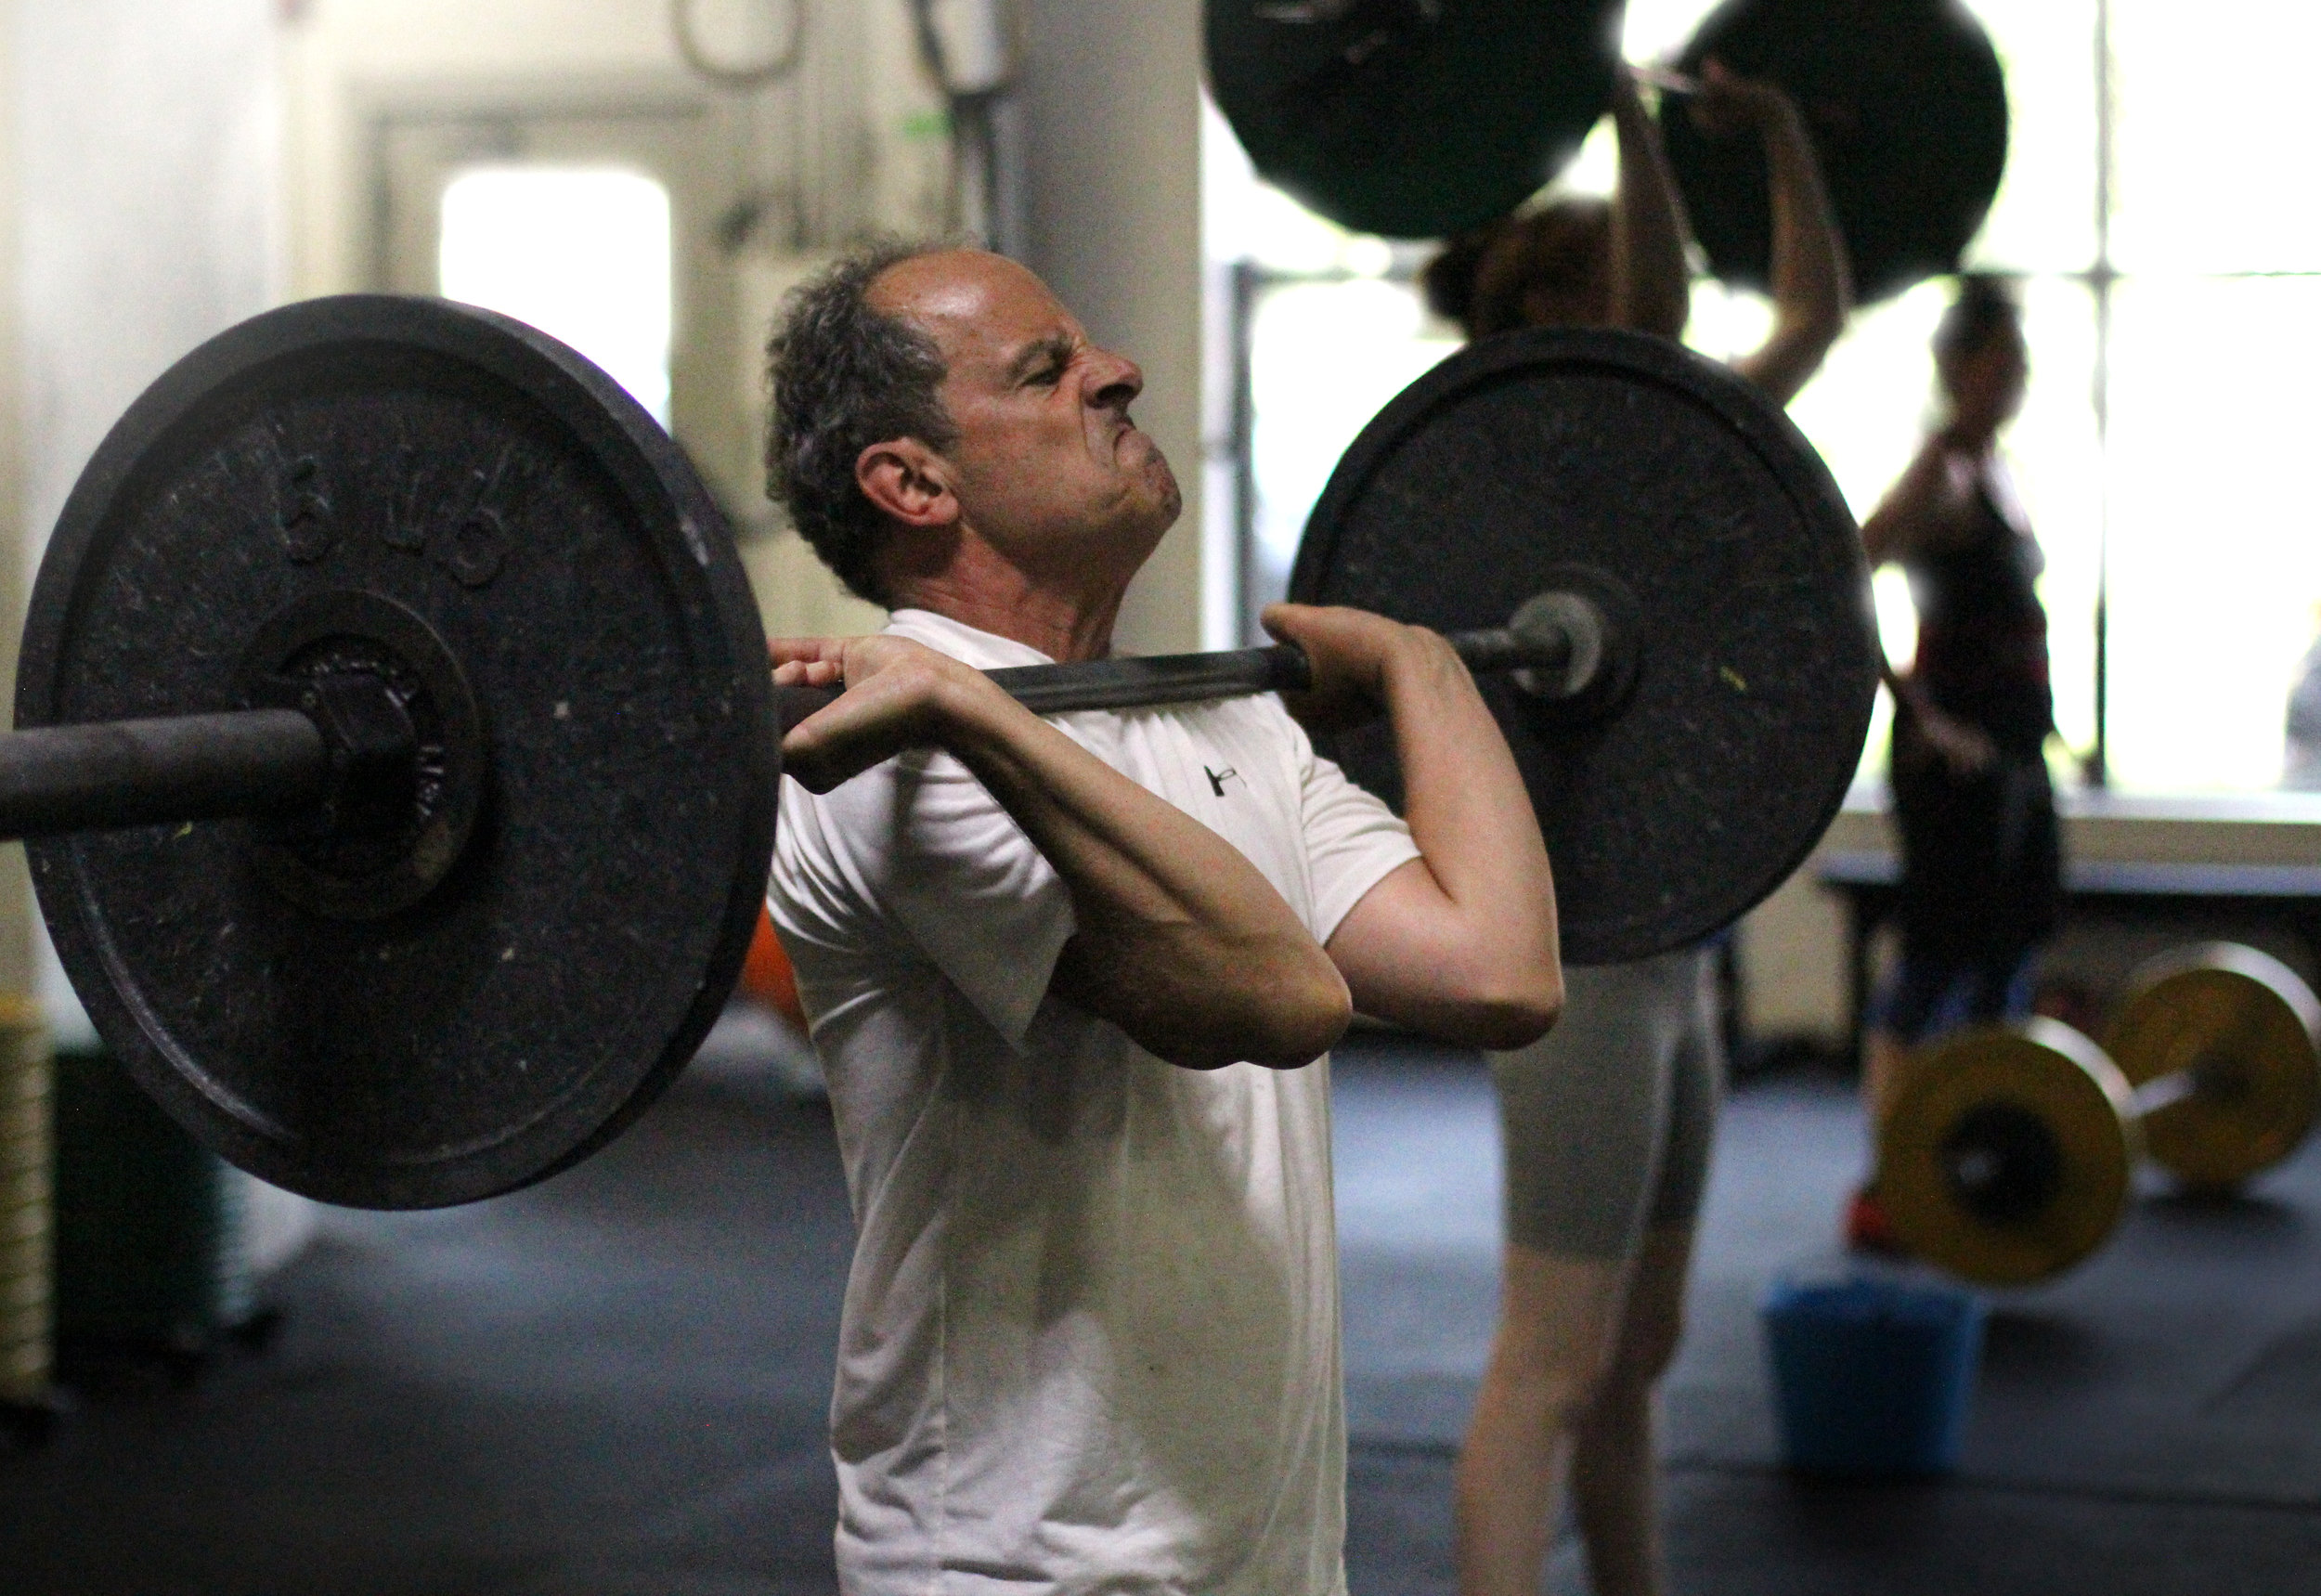 Here's PVCF athlete, Curtis Rich taking a ferocious breath in before sending this barbell overhead!